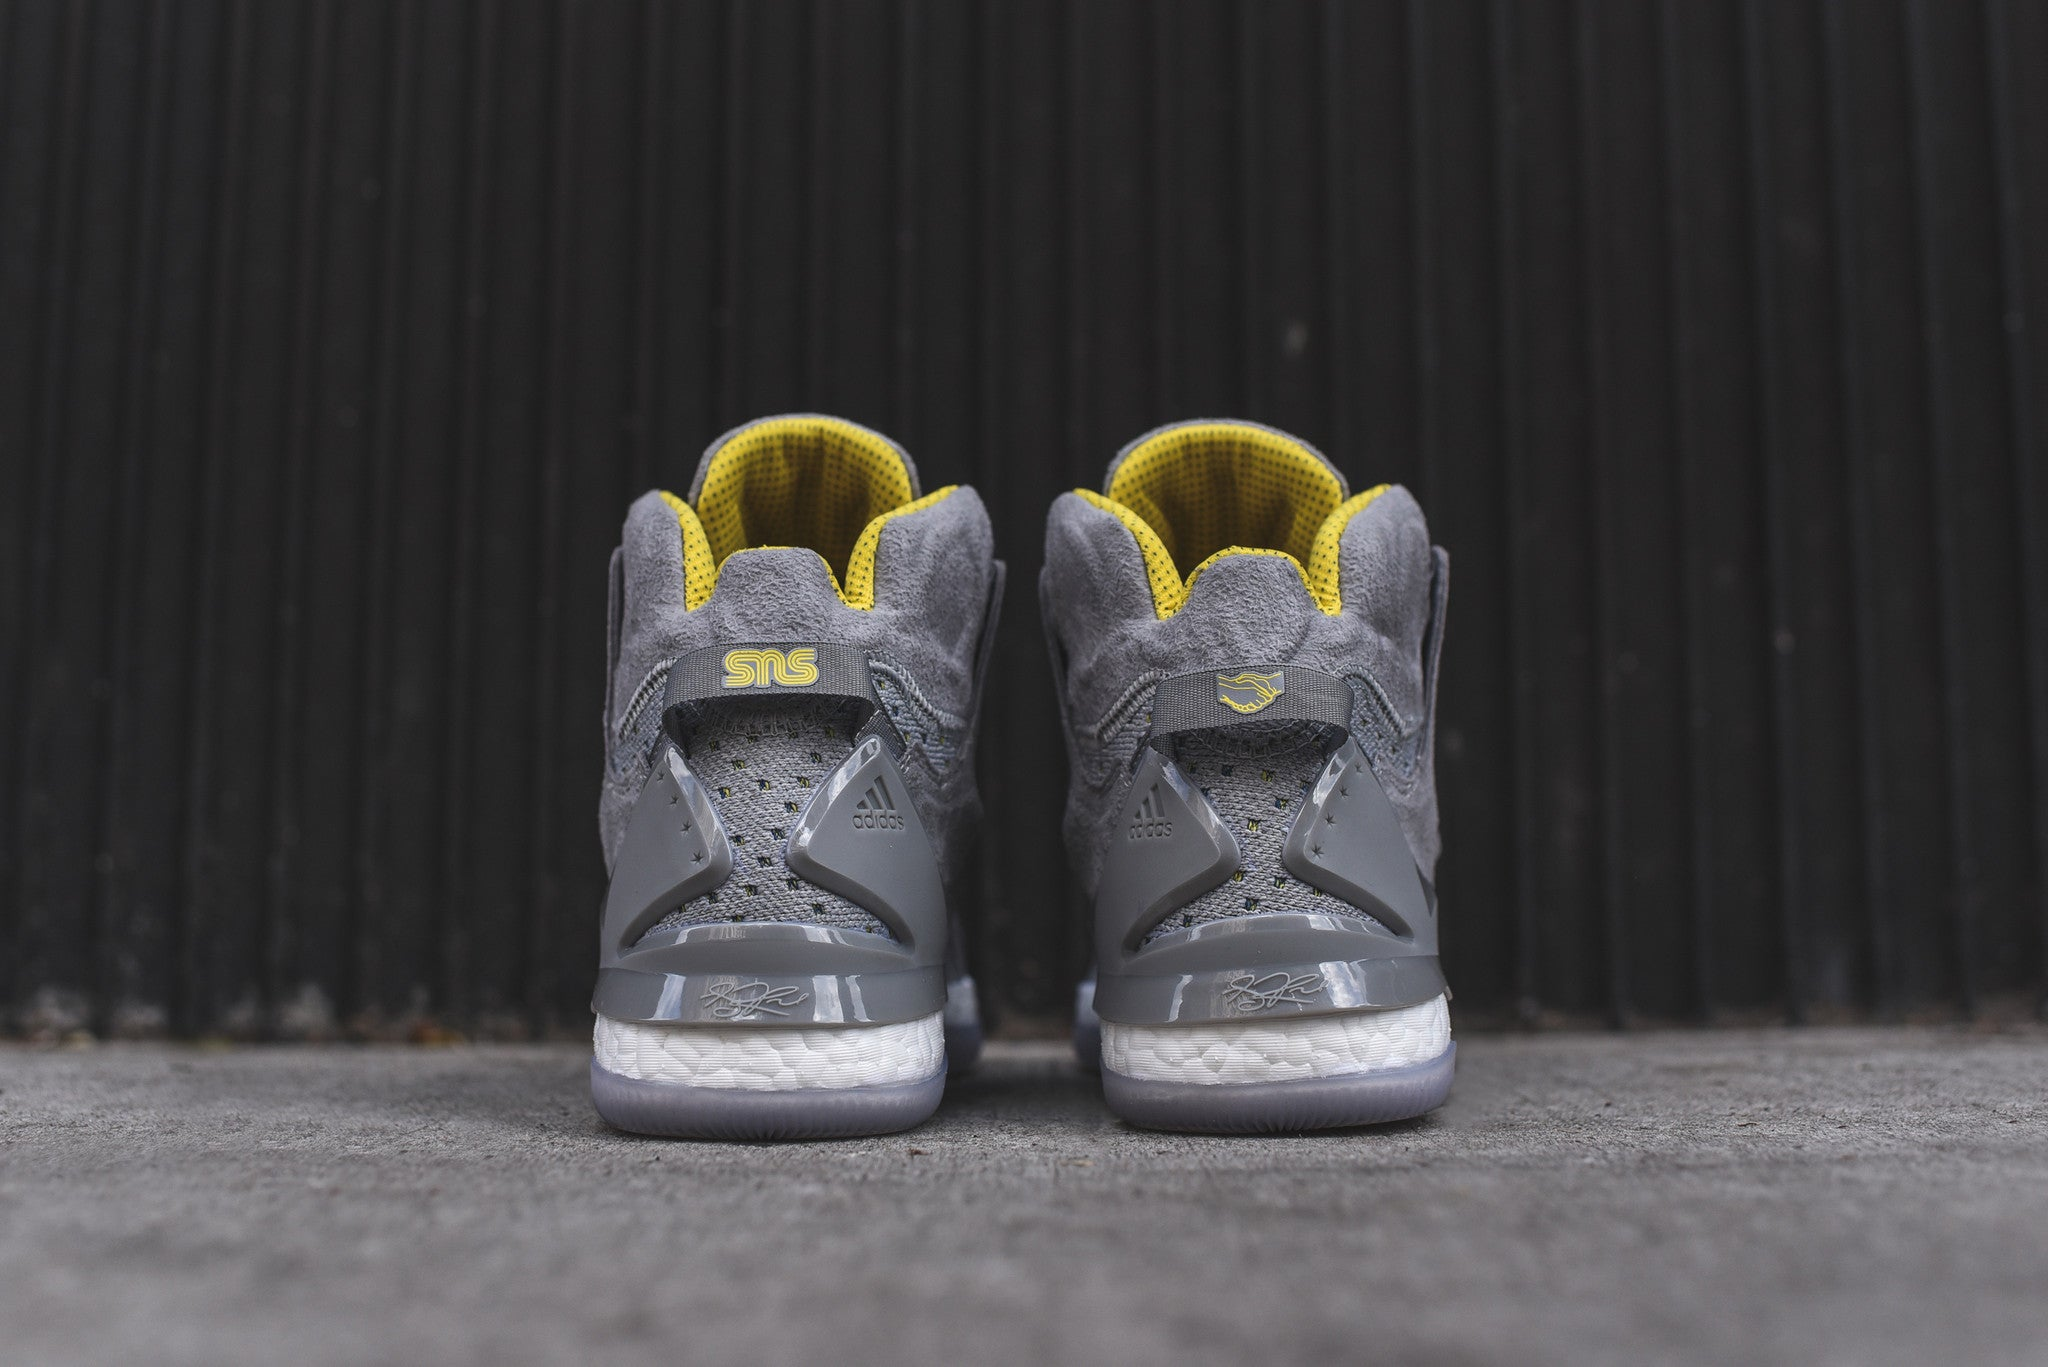 adidas Consortium x Sneakers N Stuff D Rose 7 - Onix / Yellow / White